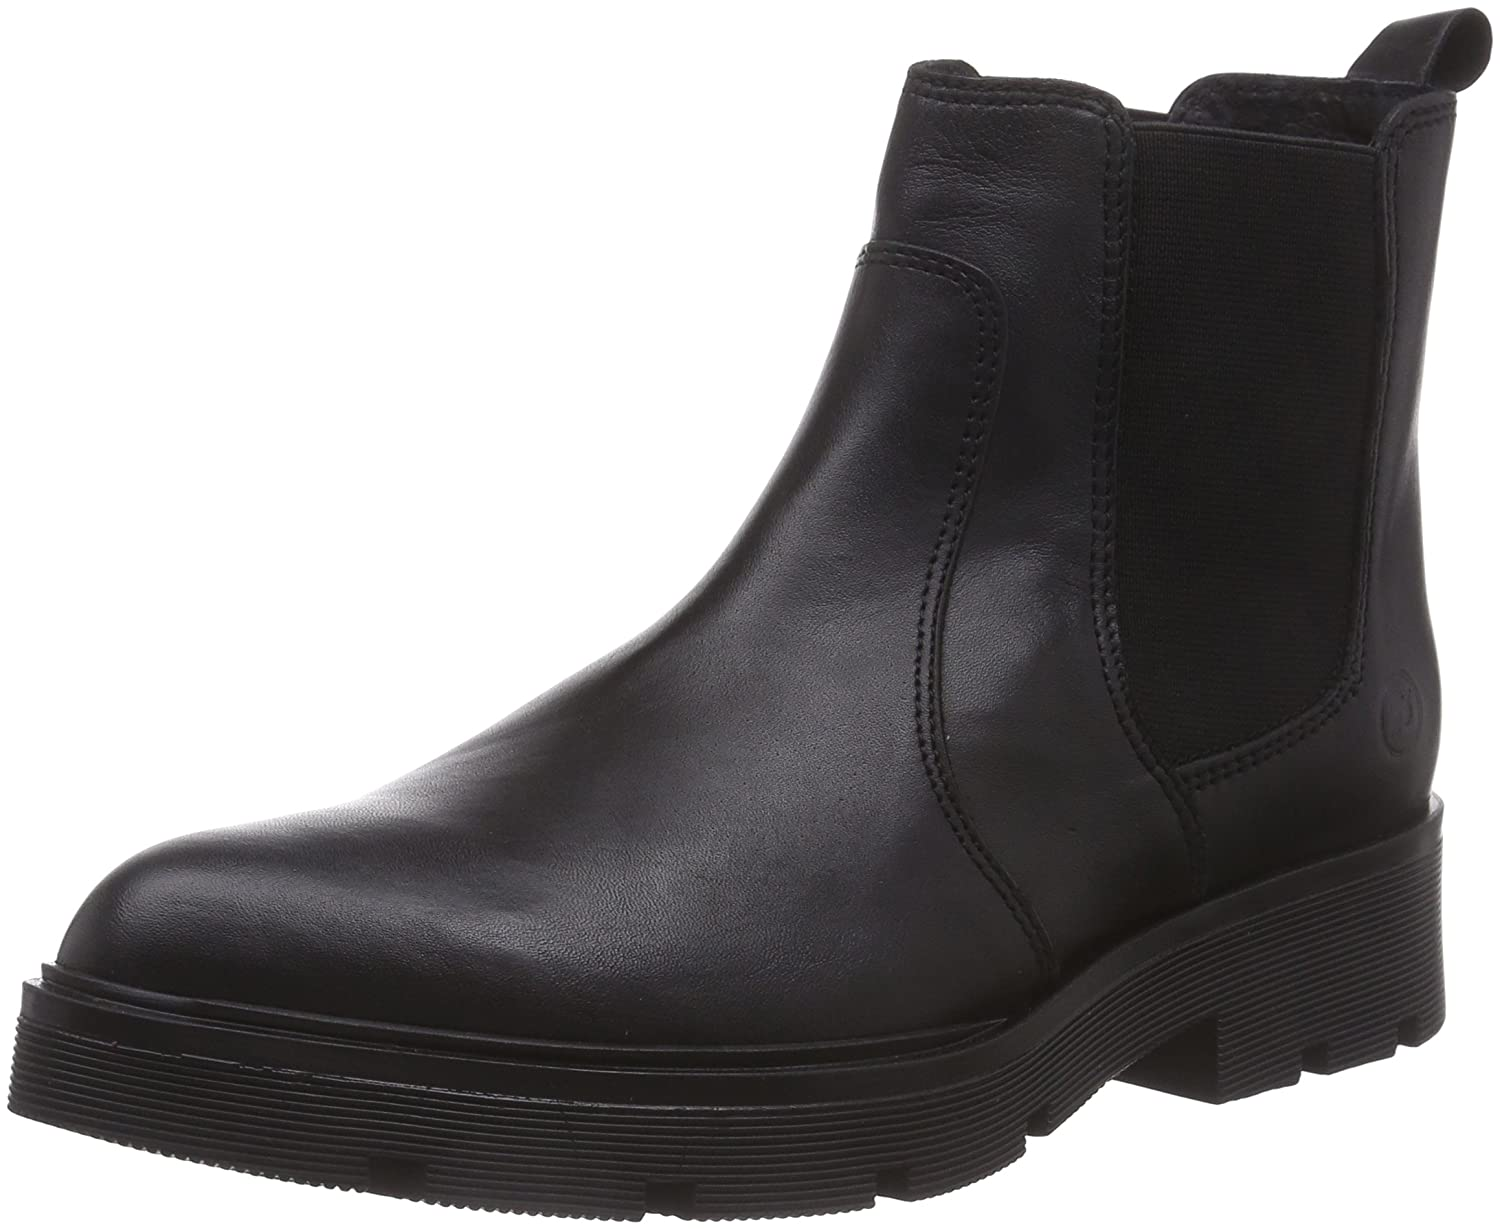 detailed look 861ee e19aa Bronx Women's BcashX Warm lined Chelsea boots short length ...